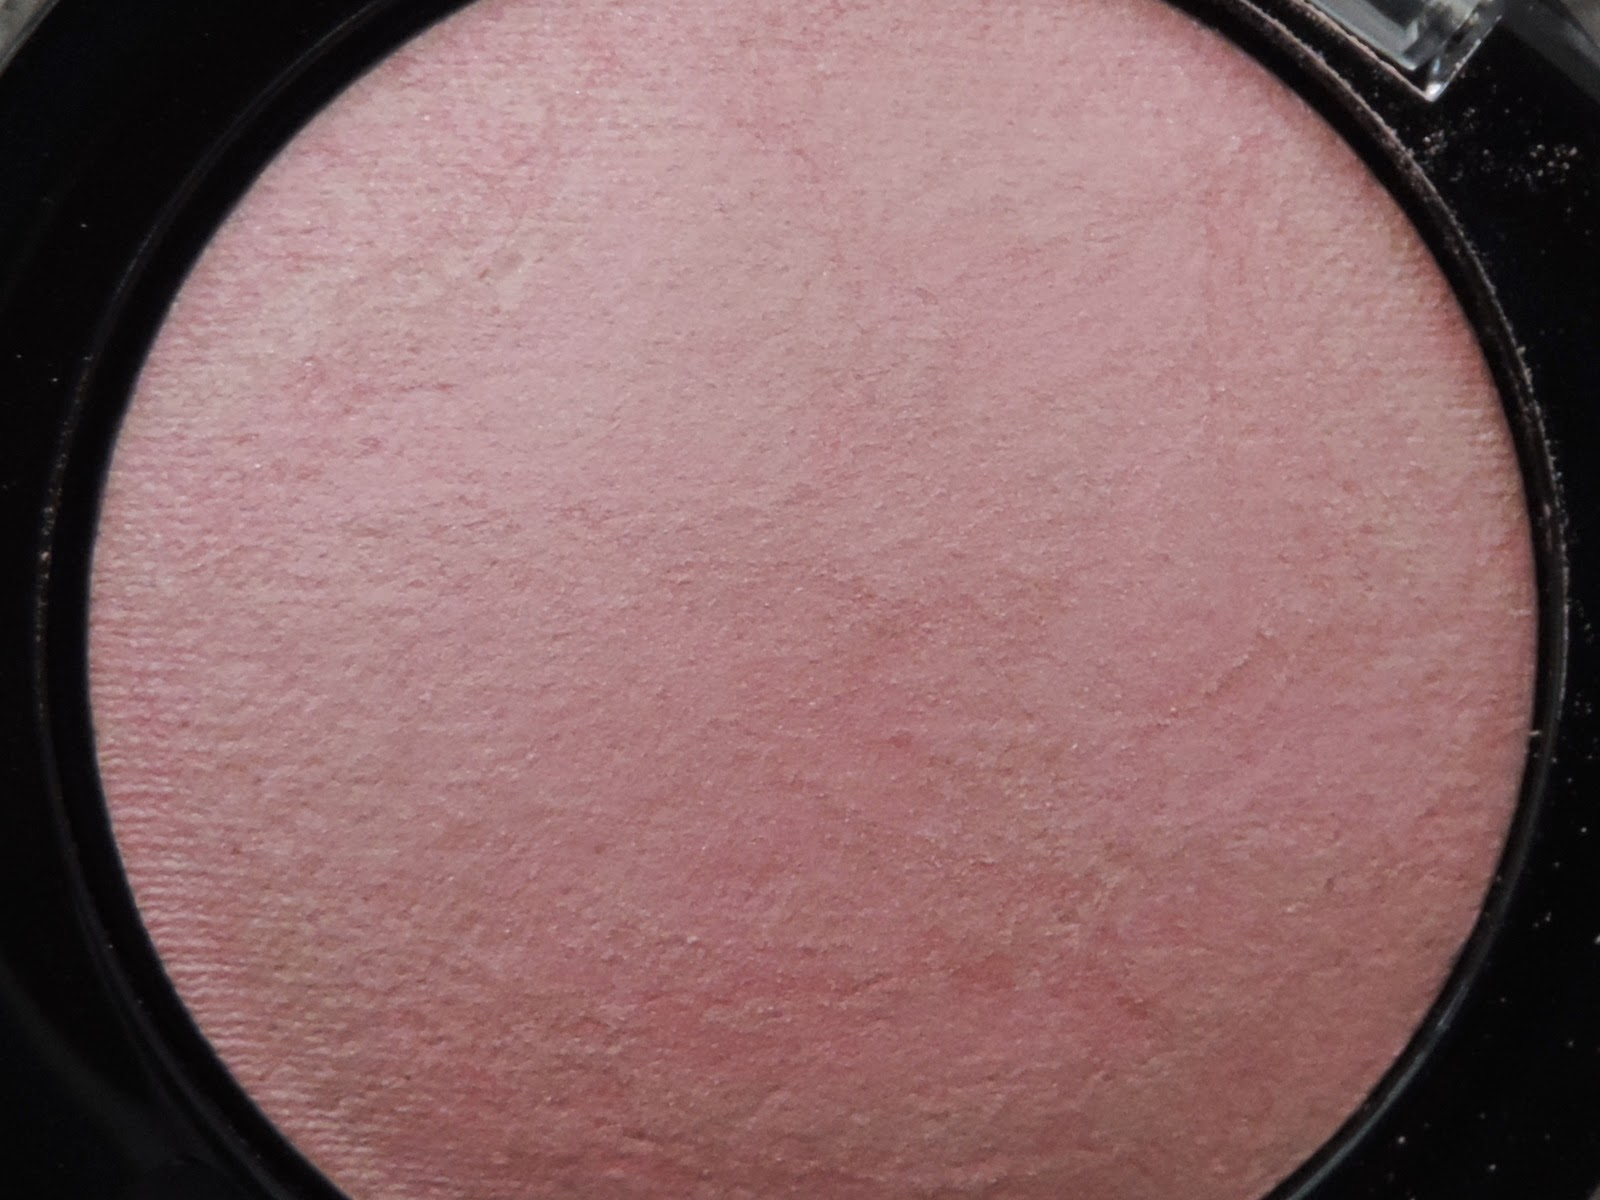 Max Factor Creme Puff Blush in Lovely Pink